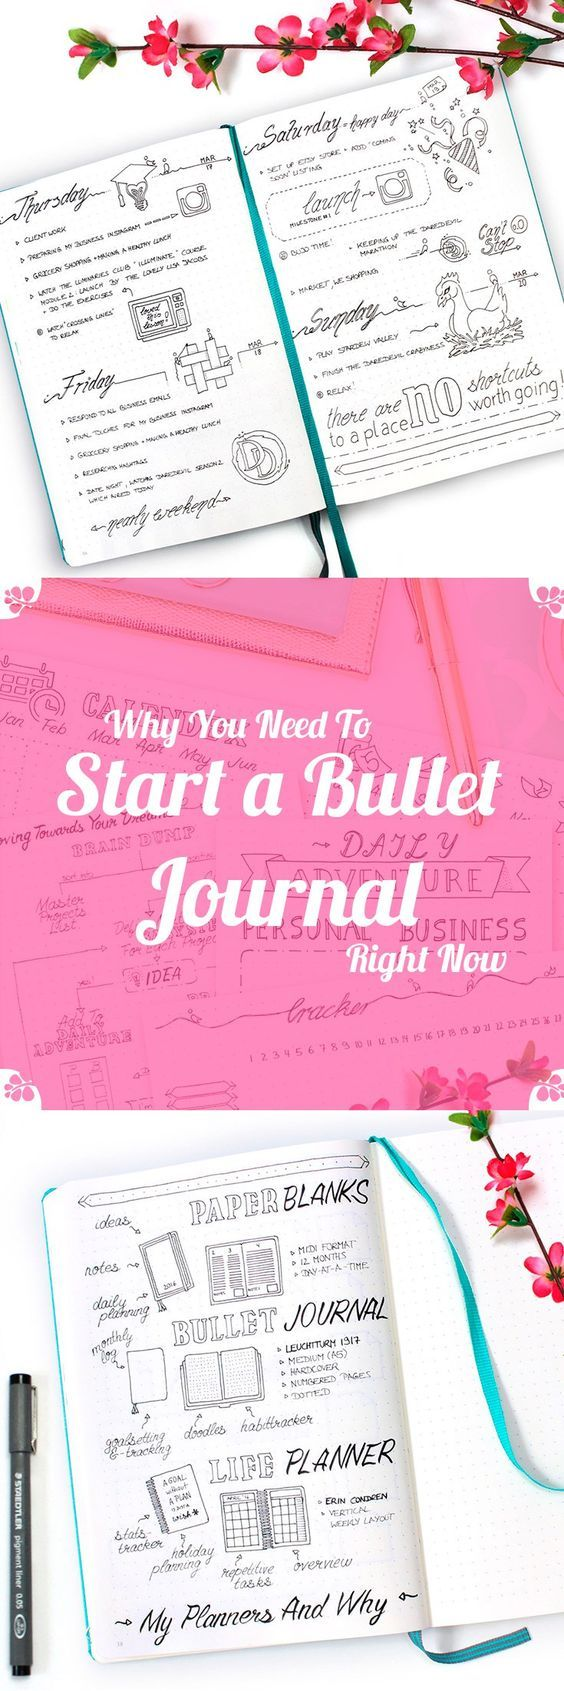 The Bullet Journal System changed my life for the better. It not only helped me…